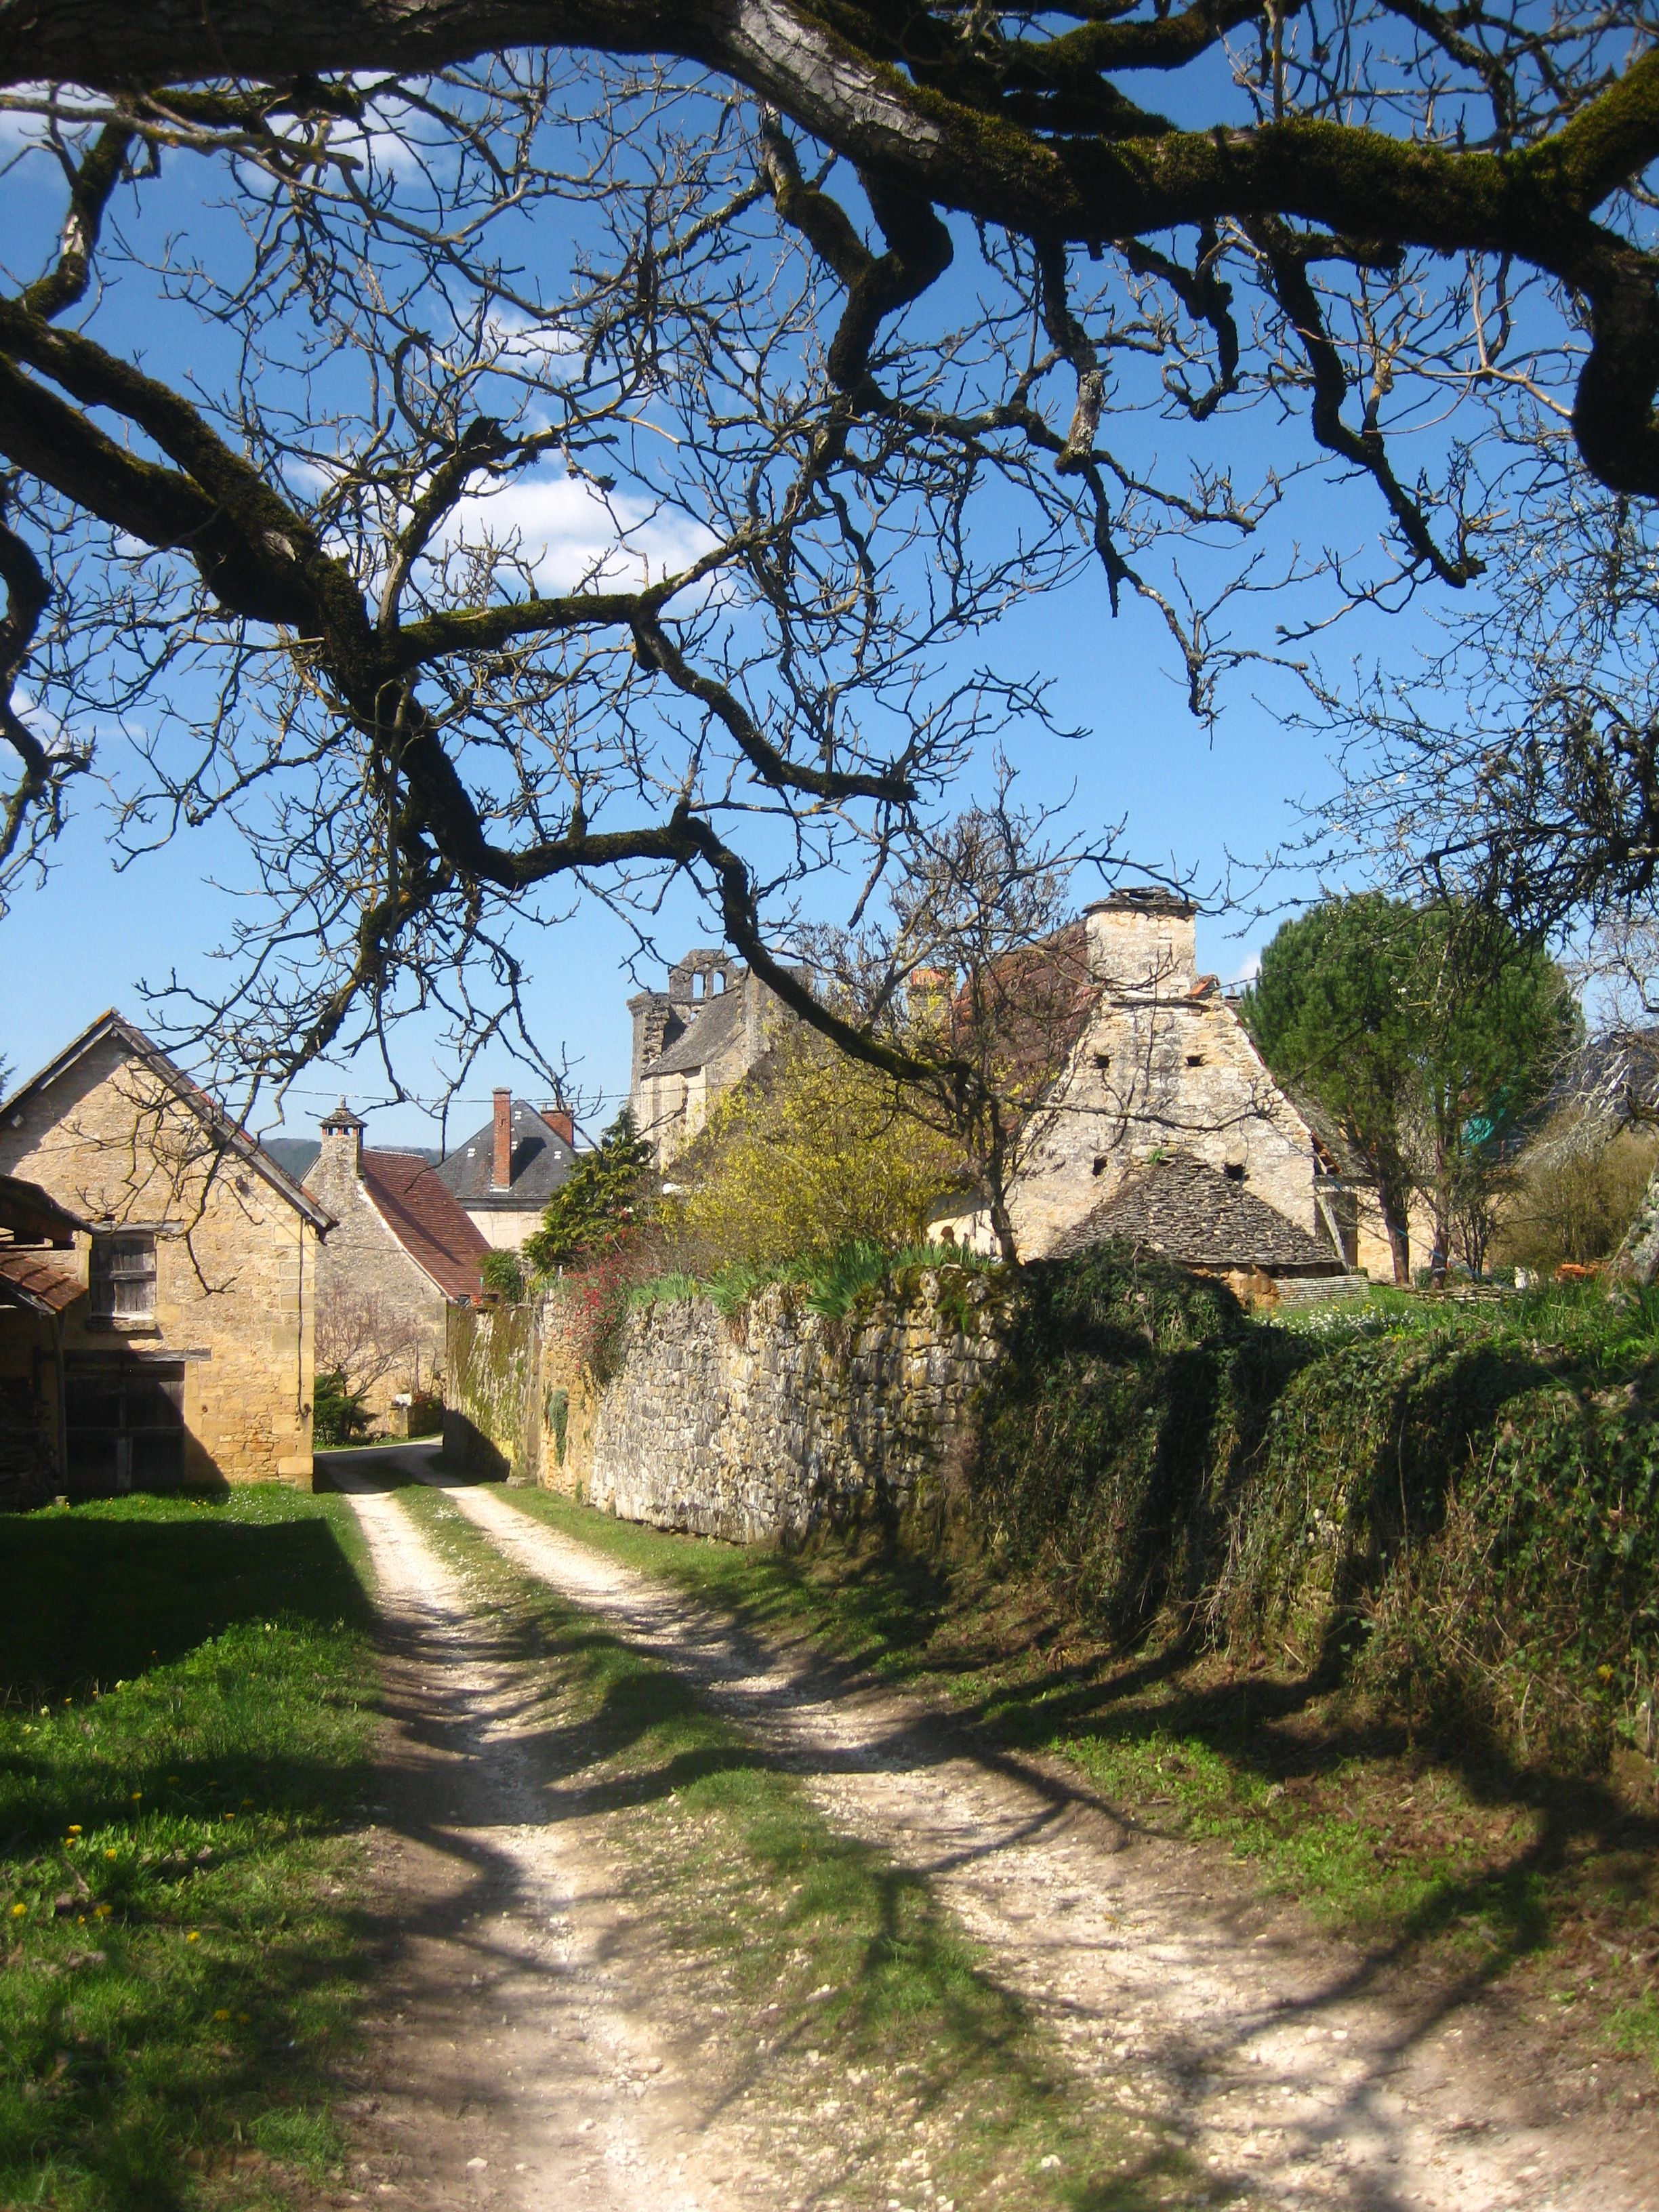 Attractions Dordogne Le Casse Noix Chambres D Hotes Bed And Breakfast Sarlat La Caneda Dordogne Perigord Noir Dordogne Bed And Breakfast Sarlat